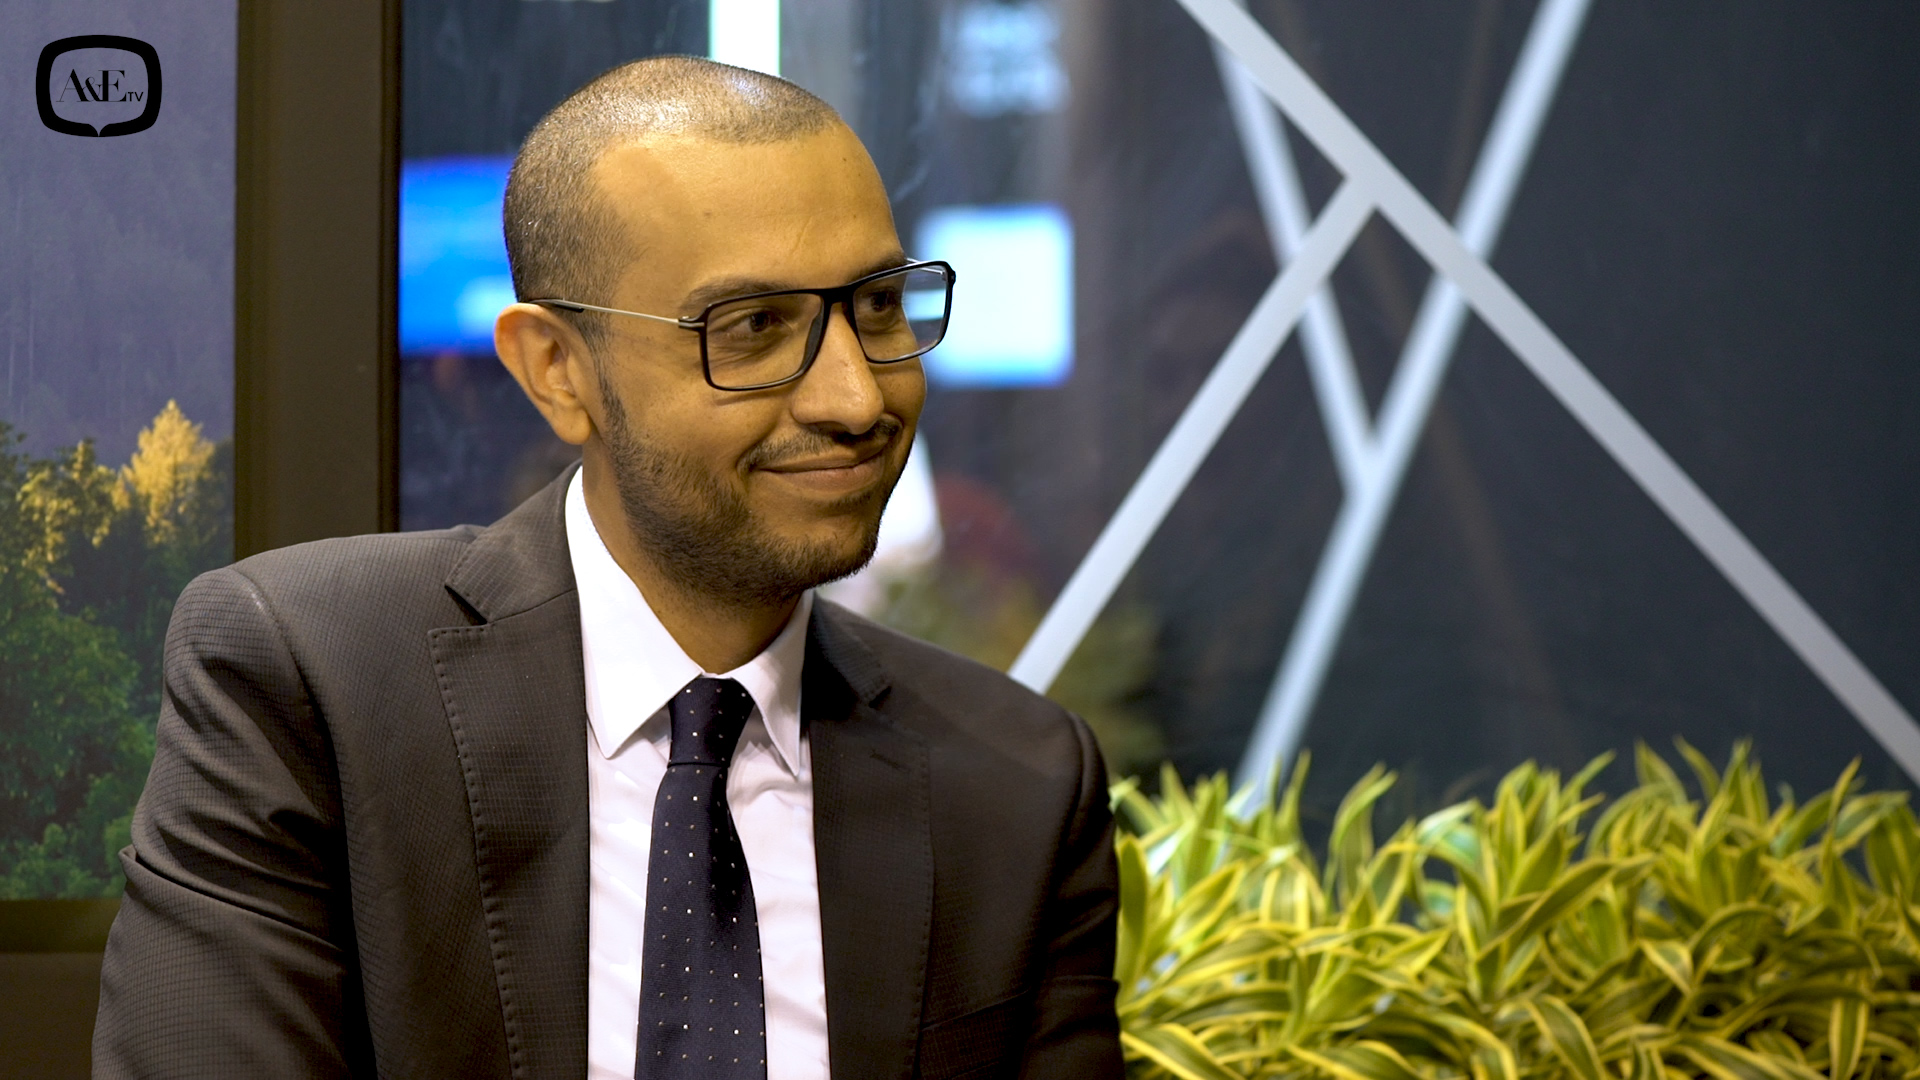 Mohamed Saeed, the General Manager at Royal Caribbean International, sits down with A&E TV